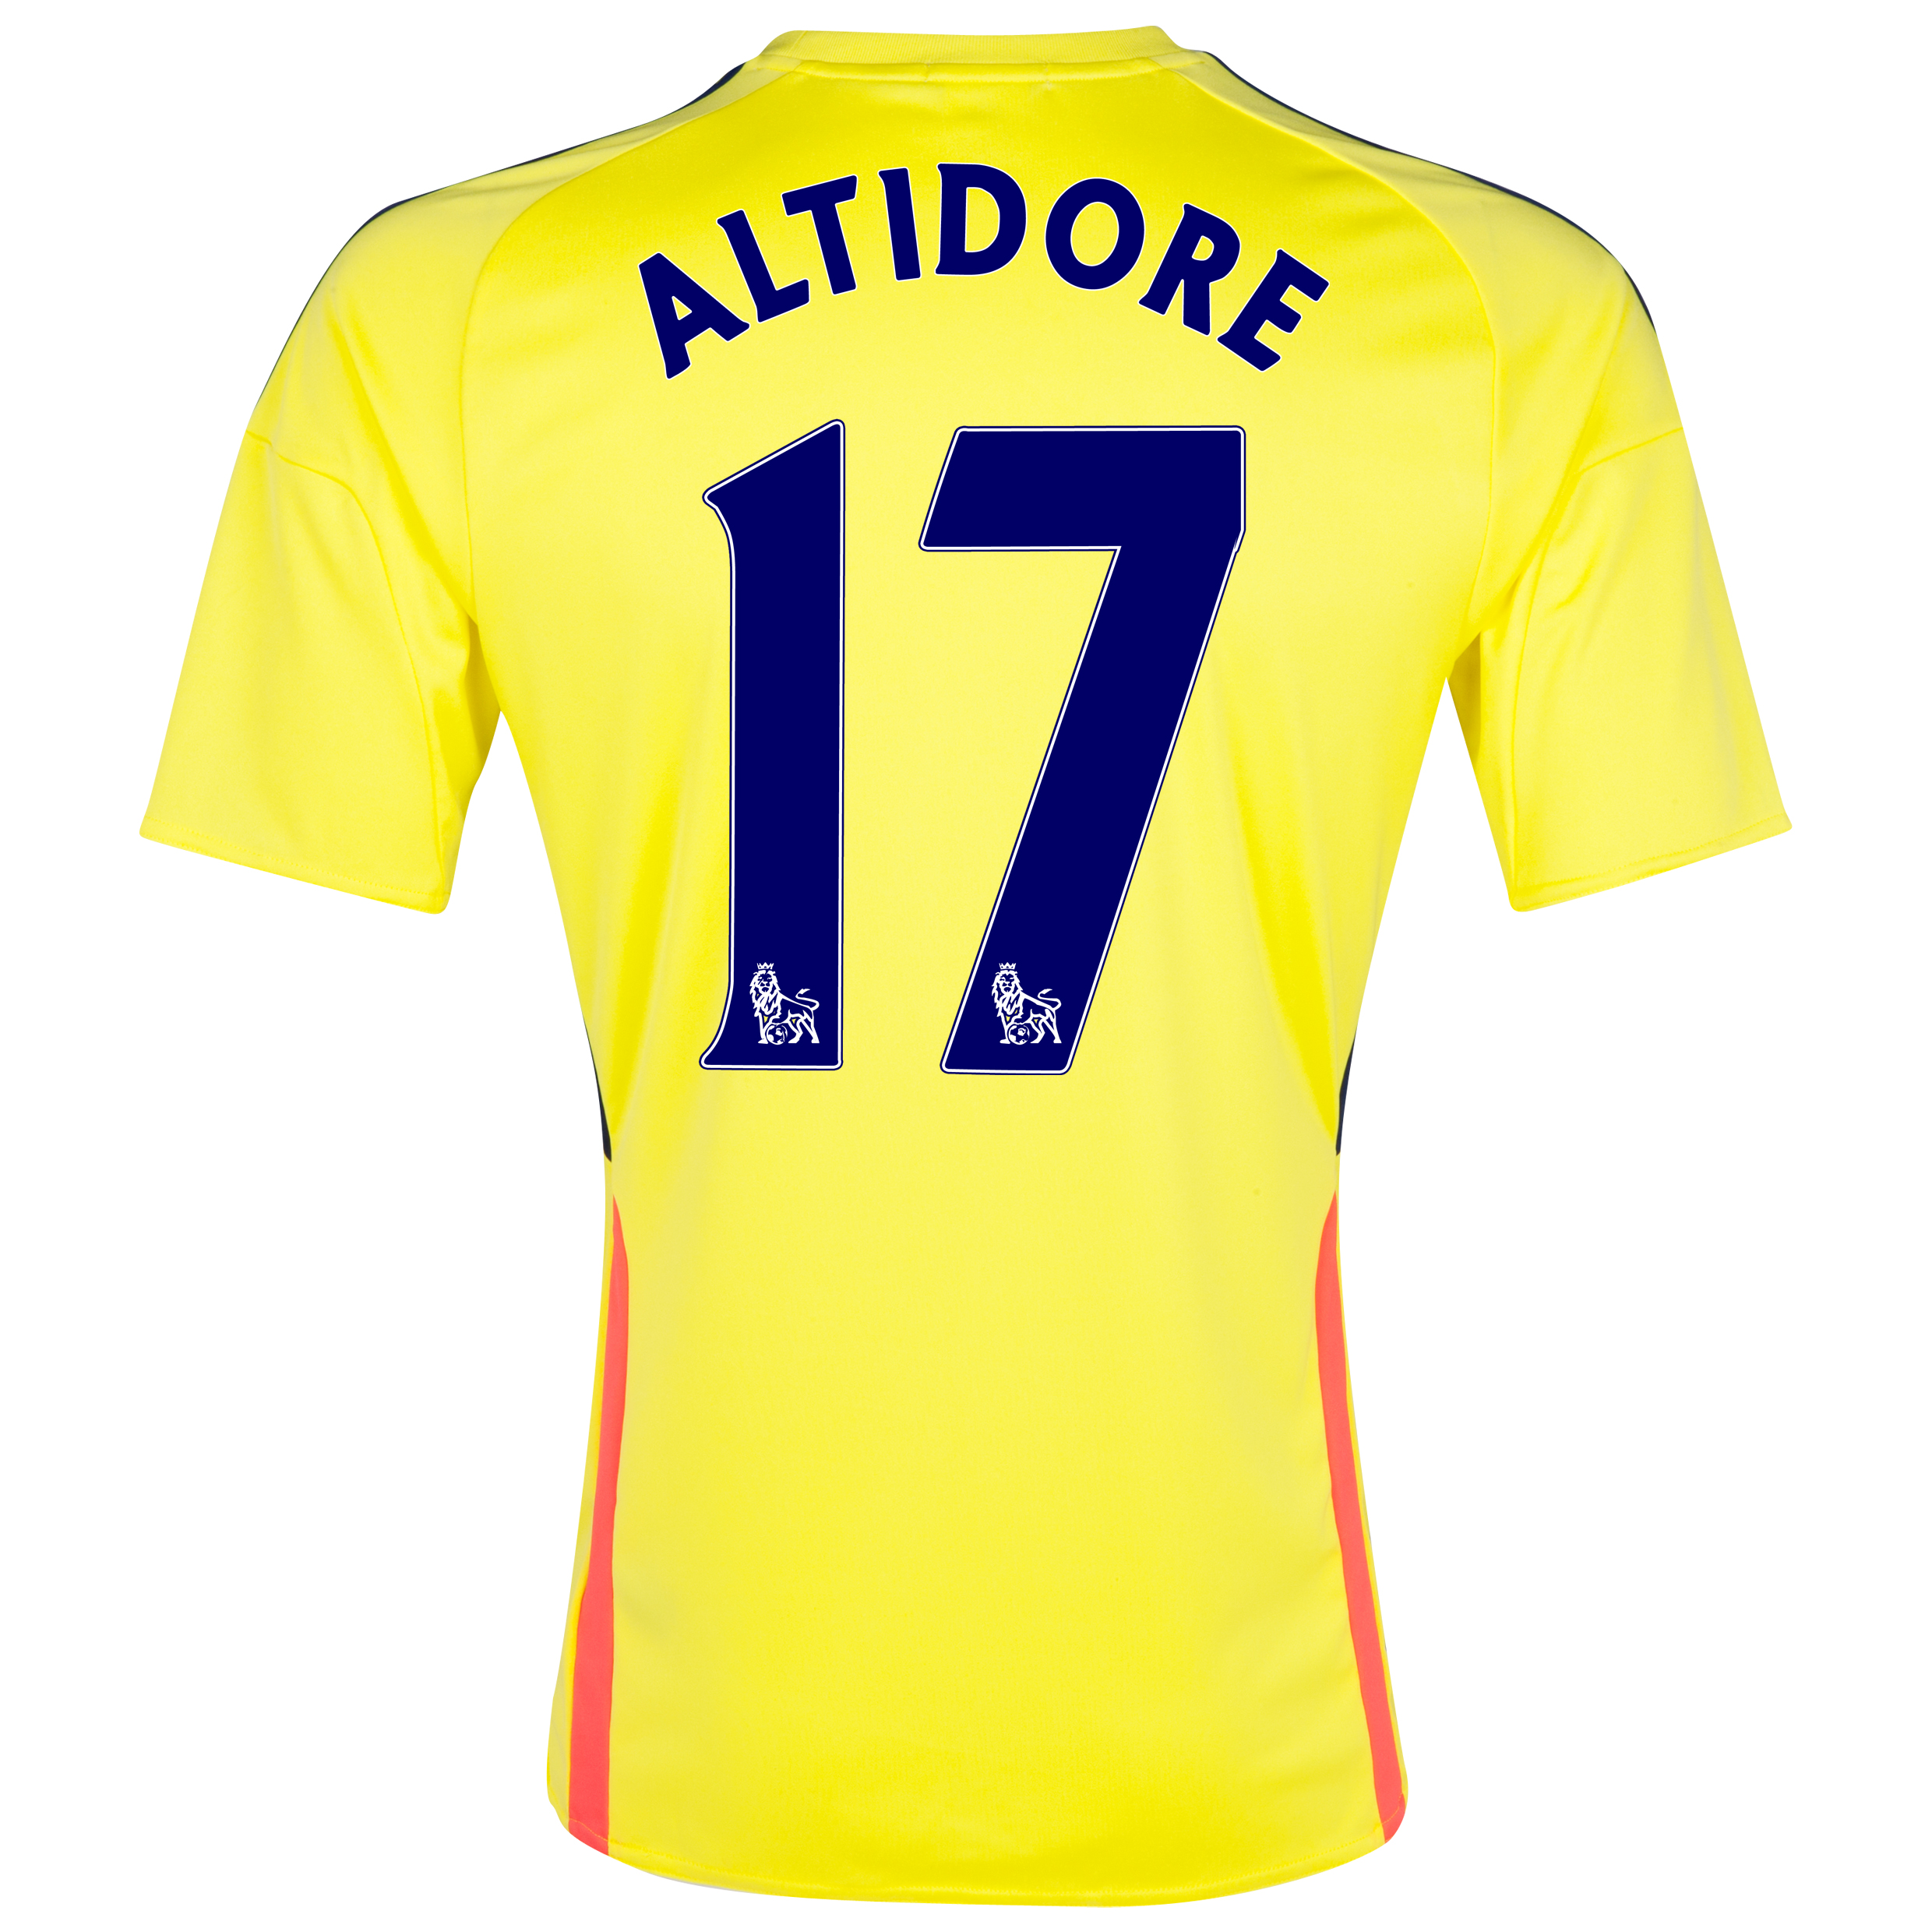 Sunderland Away Shirt 2013/14 with Altidore 17 printing